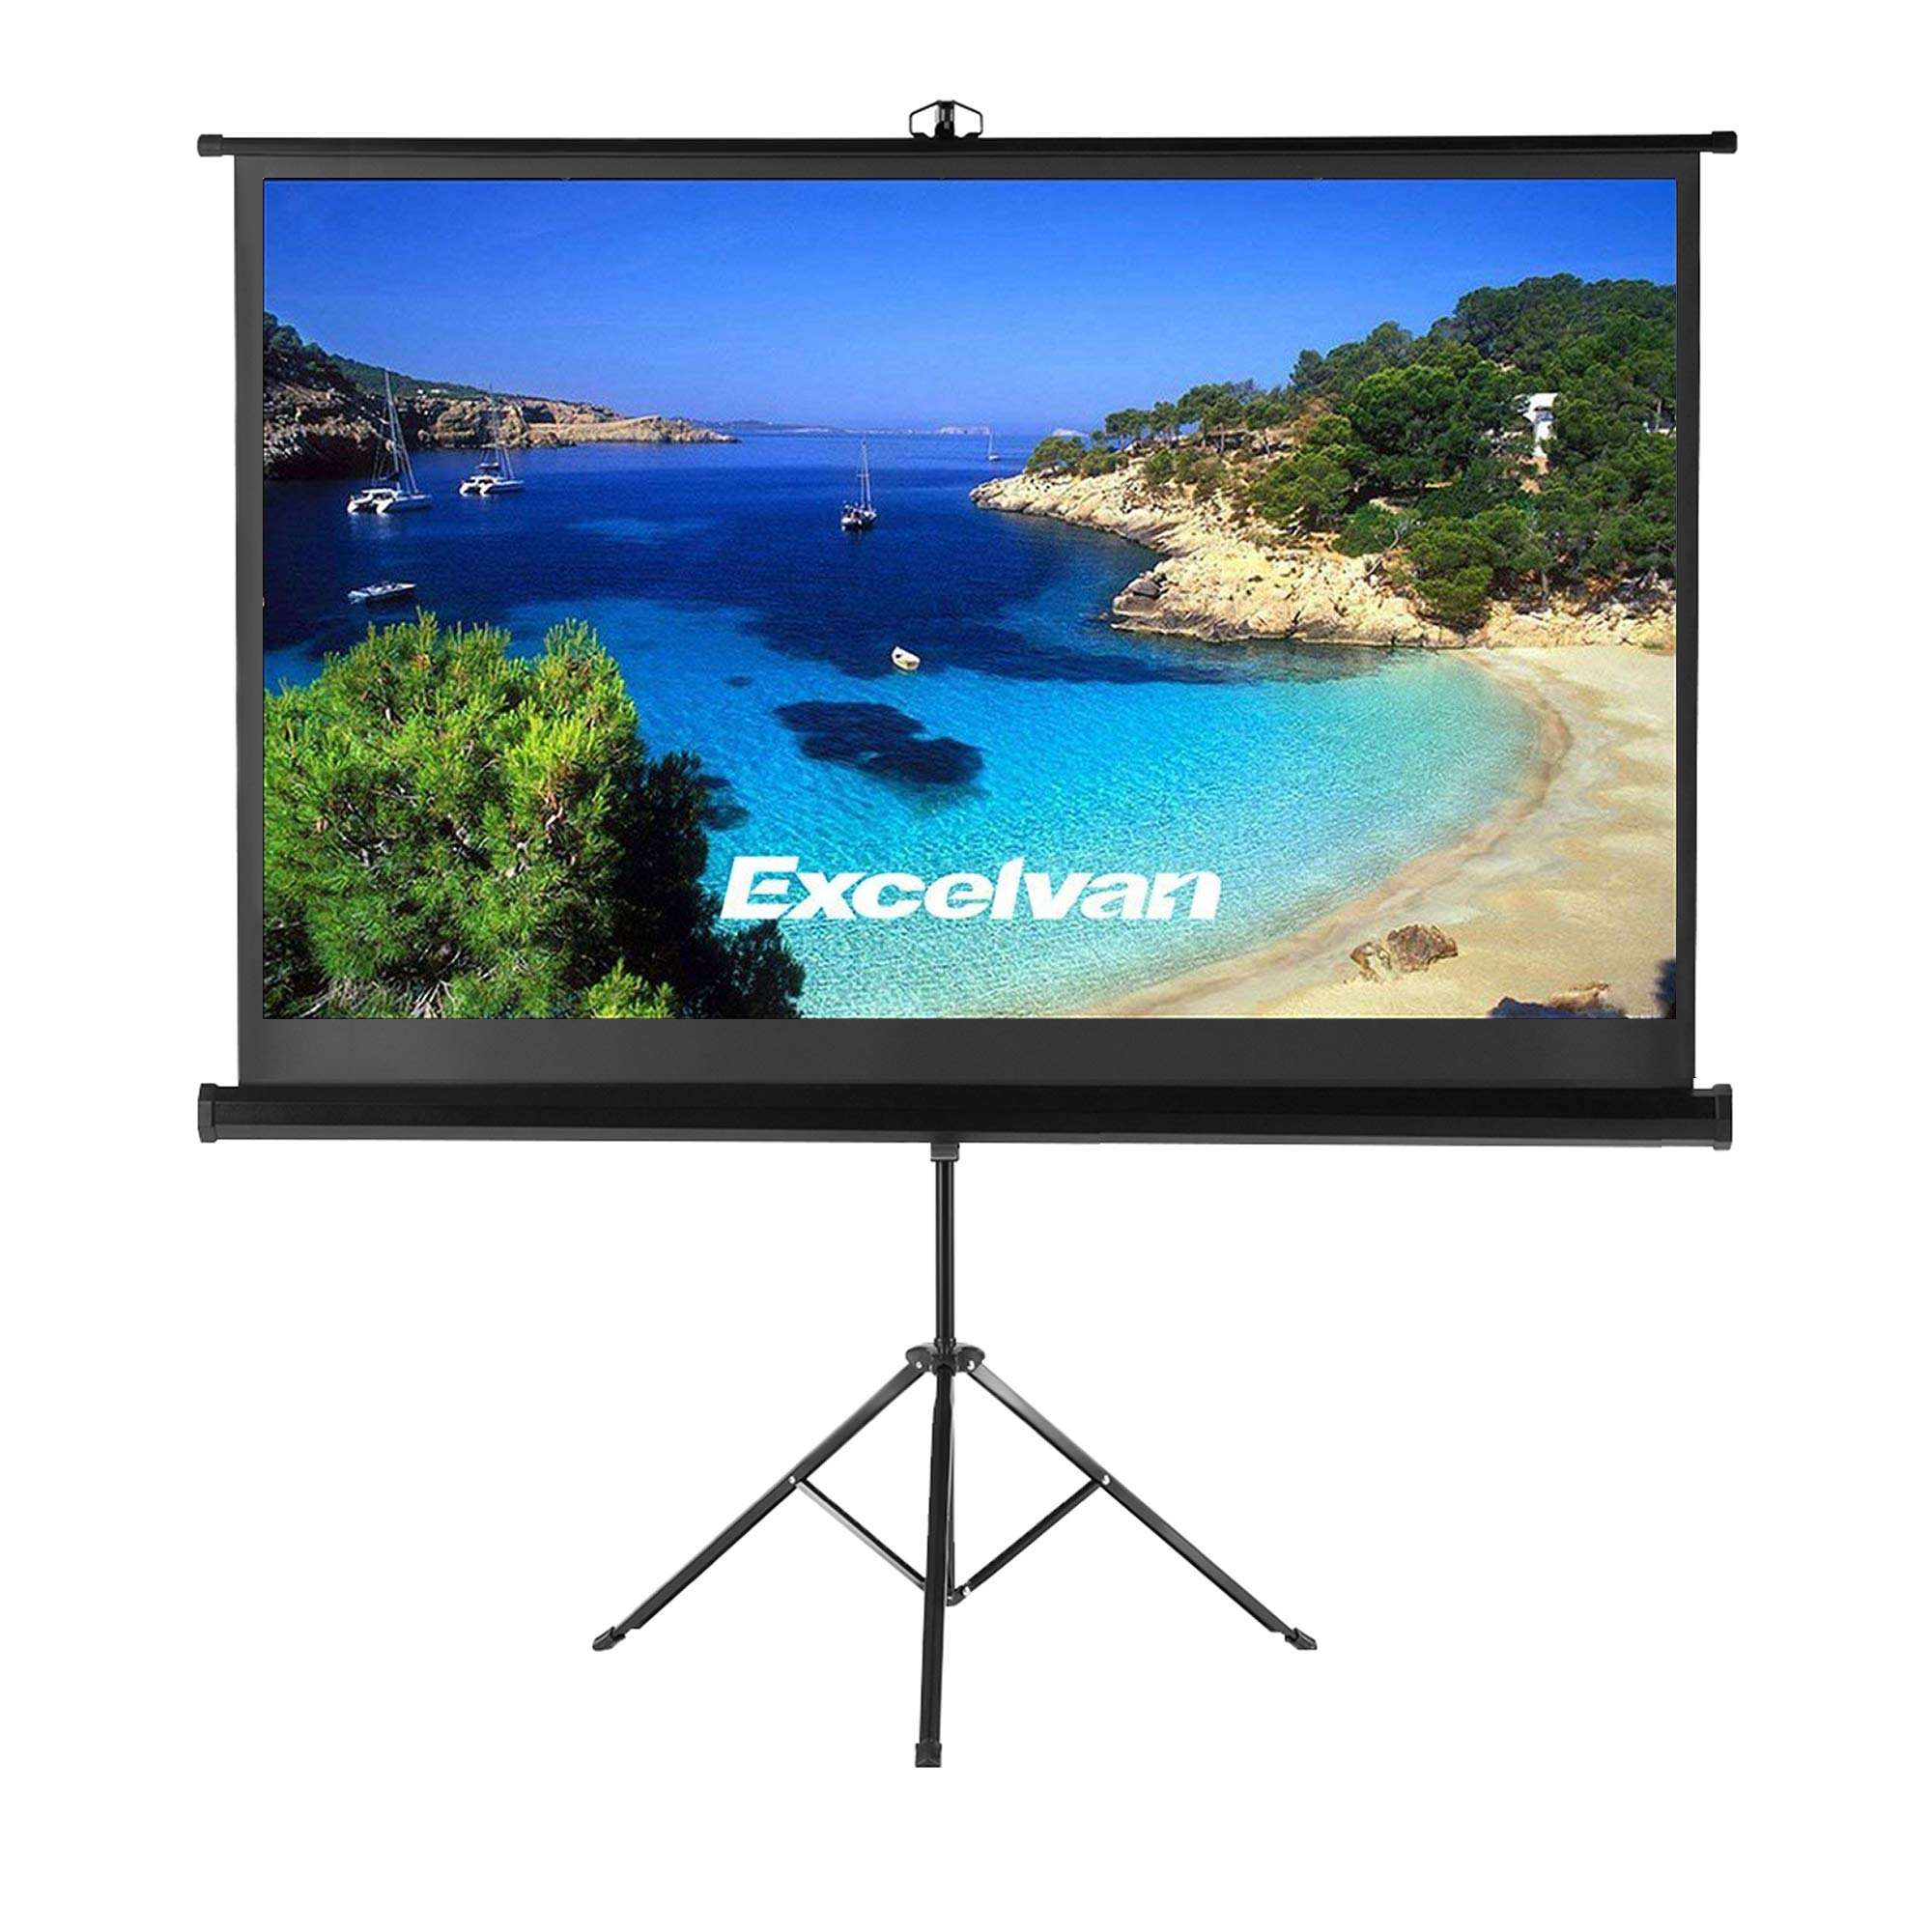 Projector Screen with Foldable Stand Tripod, Excelvan Portable Video HD Diagonal 16:9 Indoor Outdoor Screen Adjustable Wrinkle-Free Design for Home Cinema Movie Projection(100 inch)